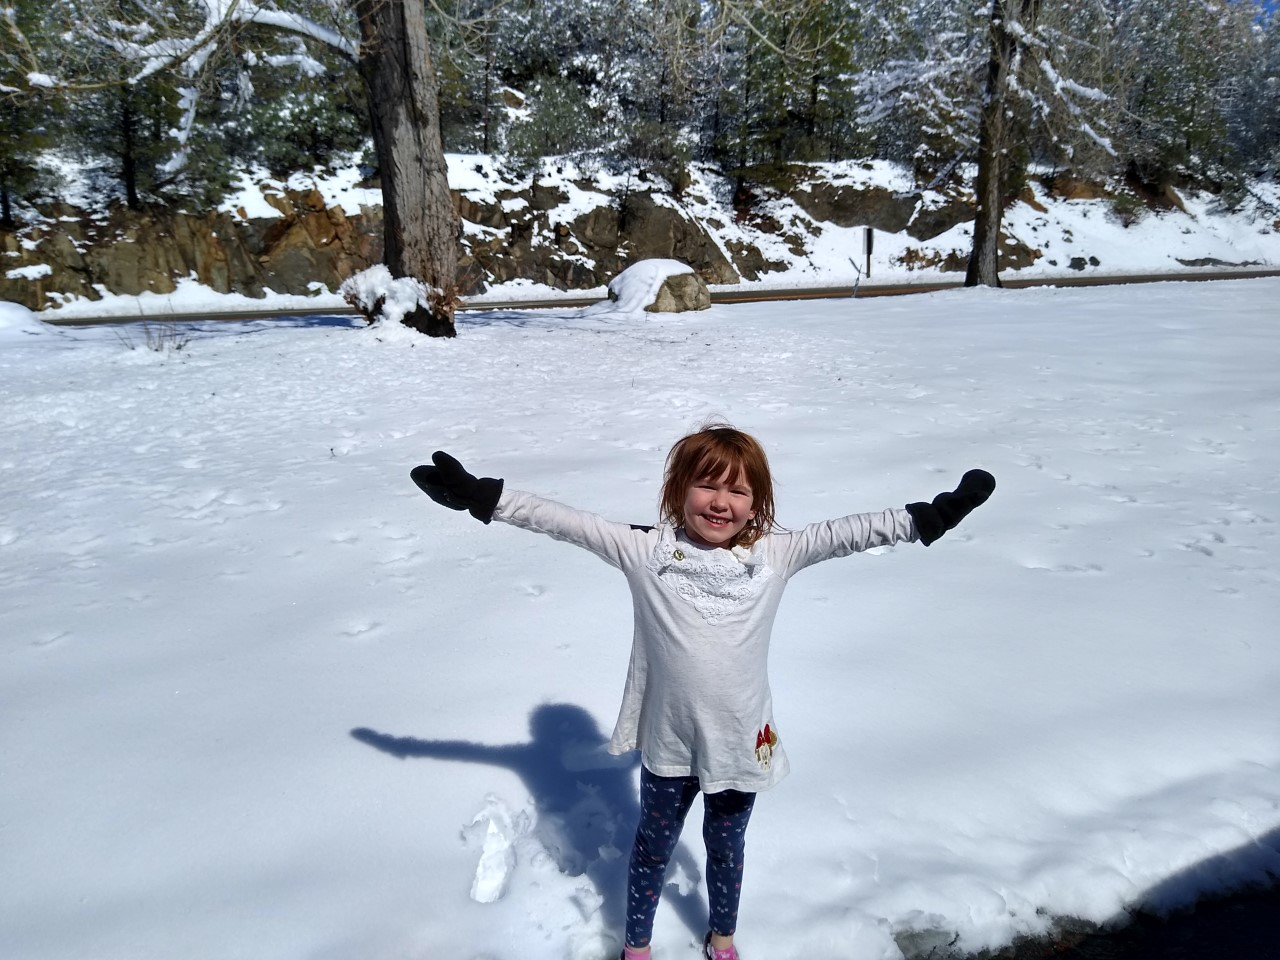 Our granddaughter, Liliana, makes a snow angel.